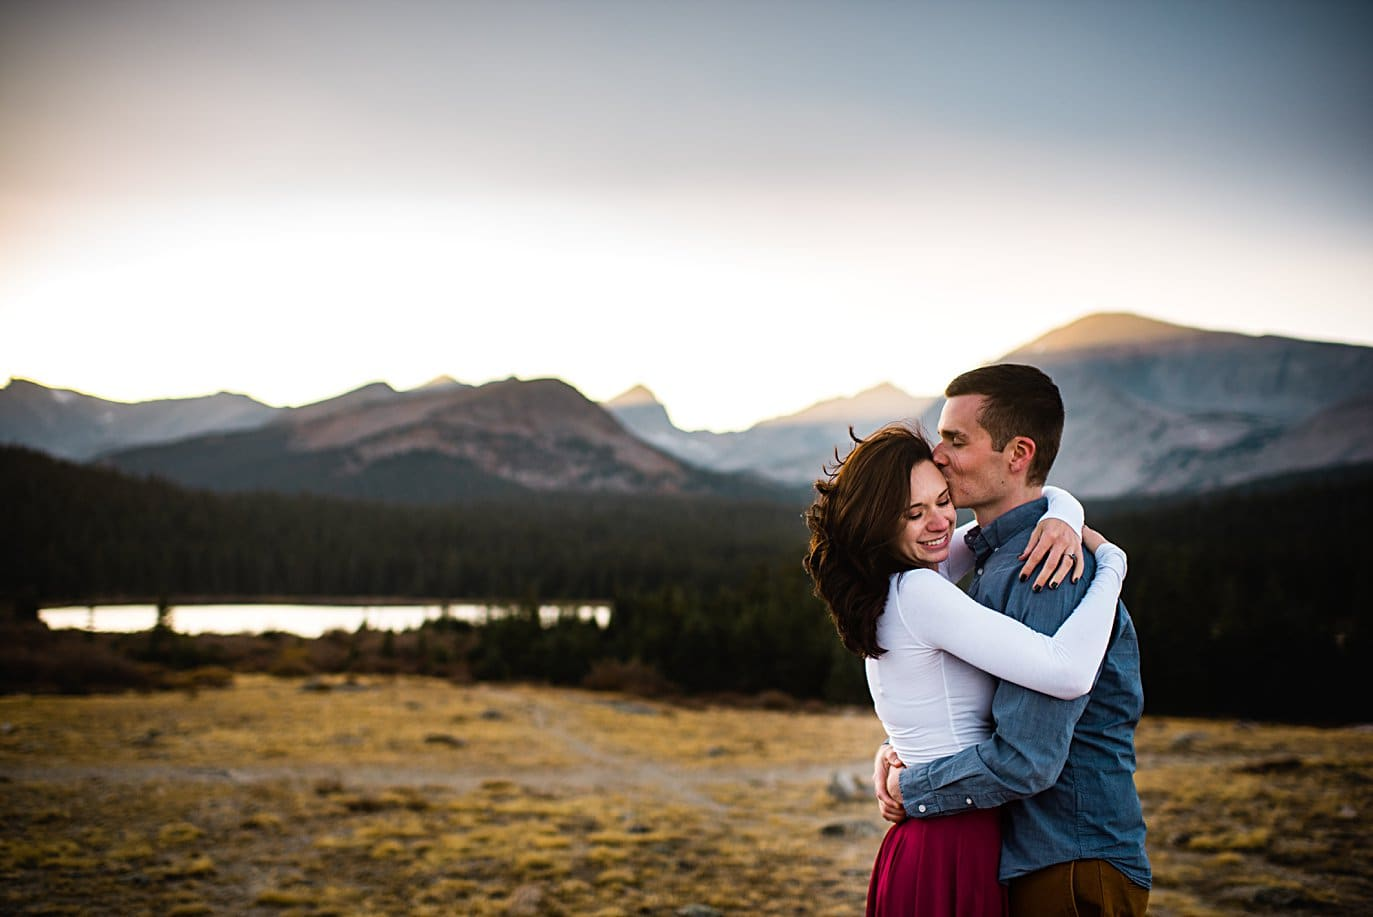 windy engagement session at brainard lake by Boulder wedding photographer Jennie Crate